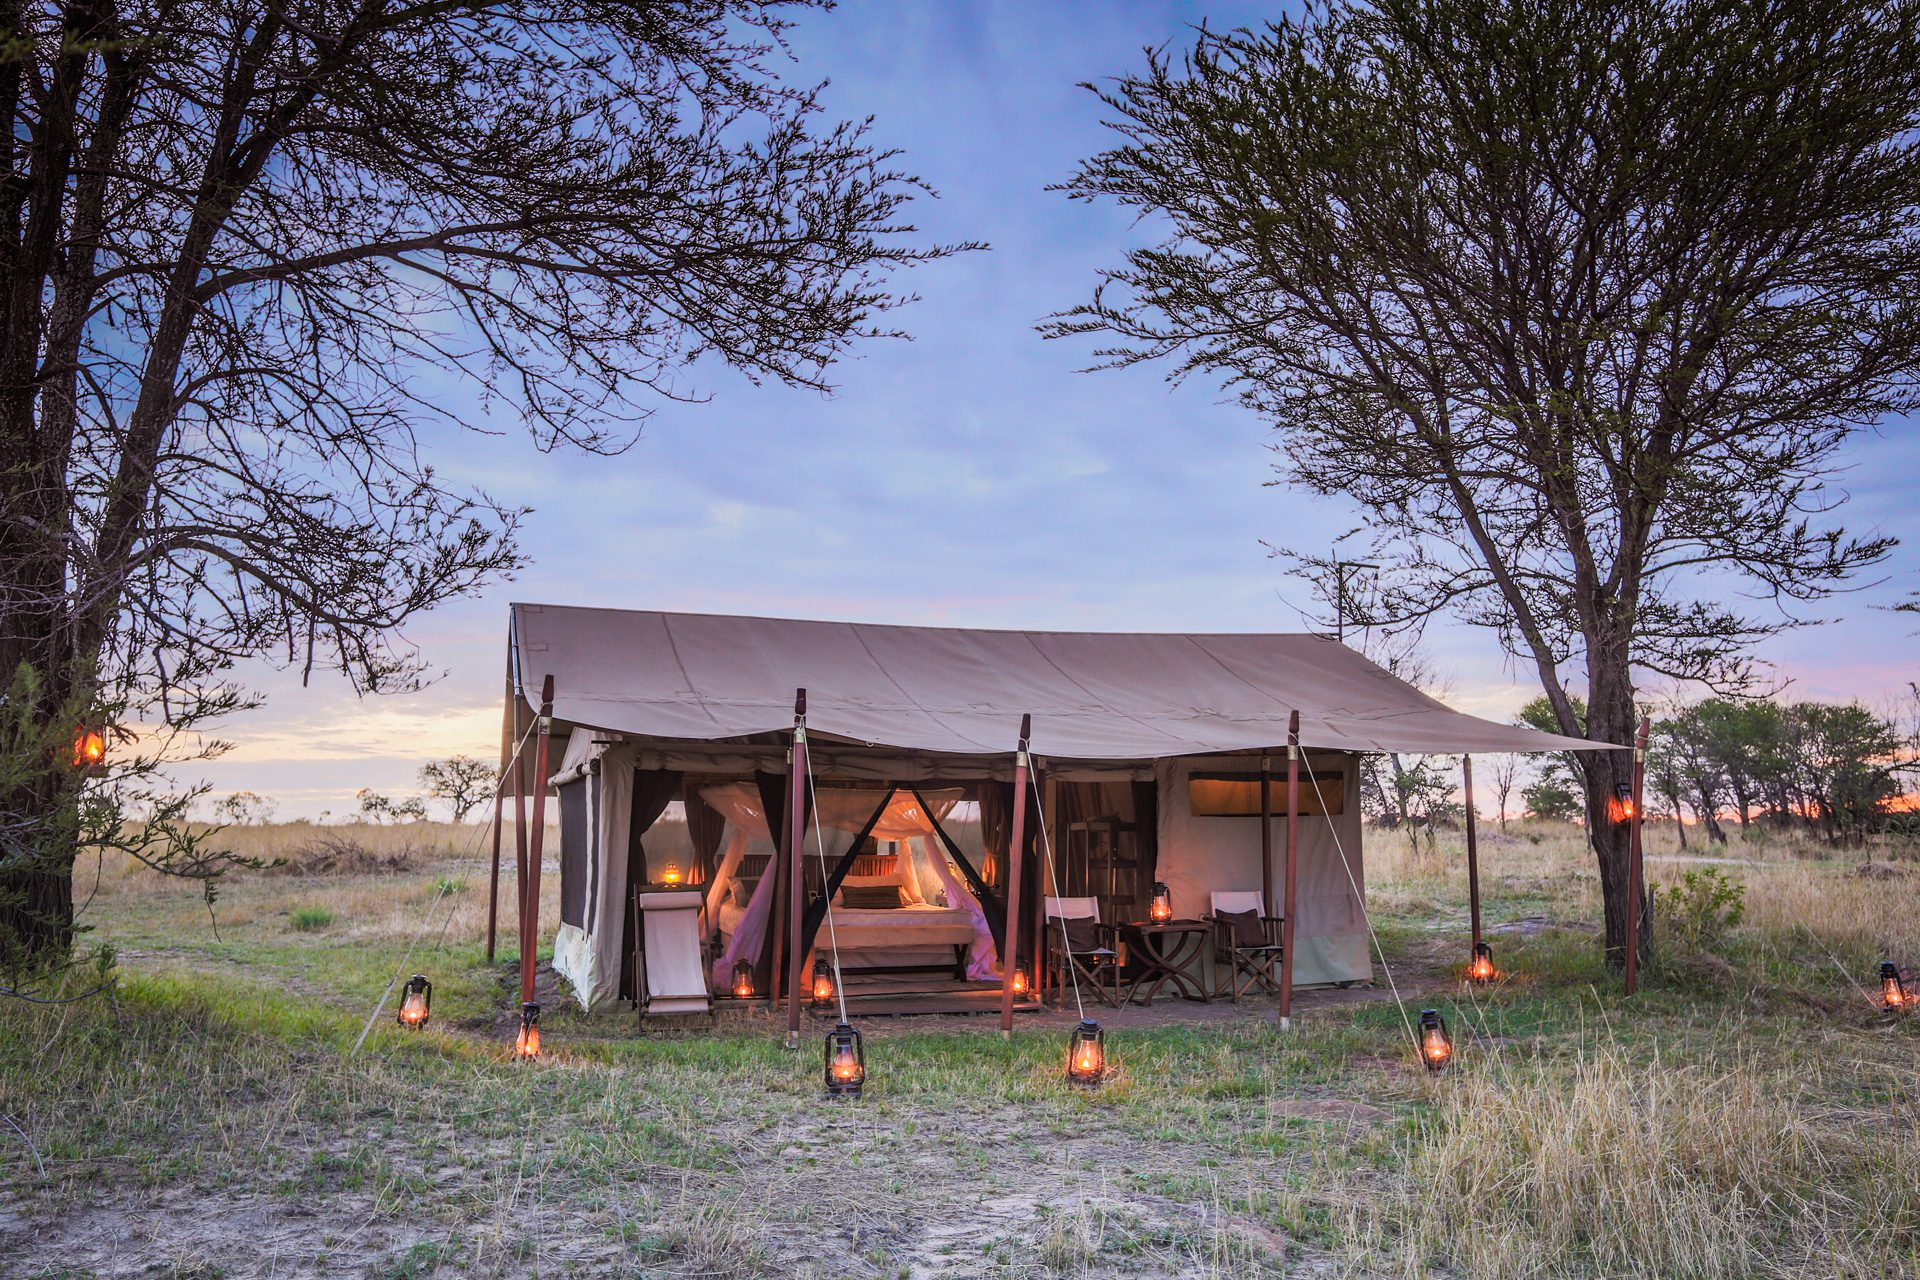 mobile tented camp in the Serengeti surrounded by lit lanterns during tanzania safari